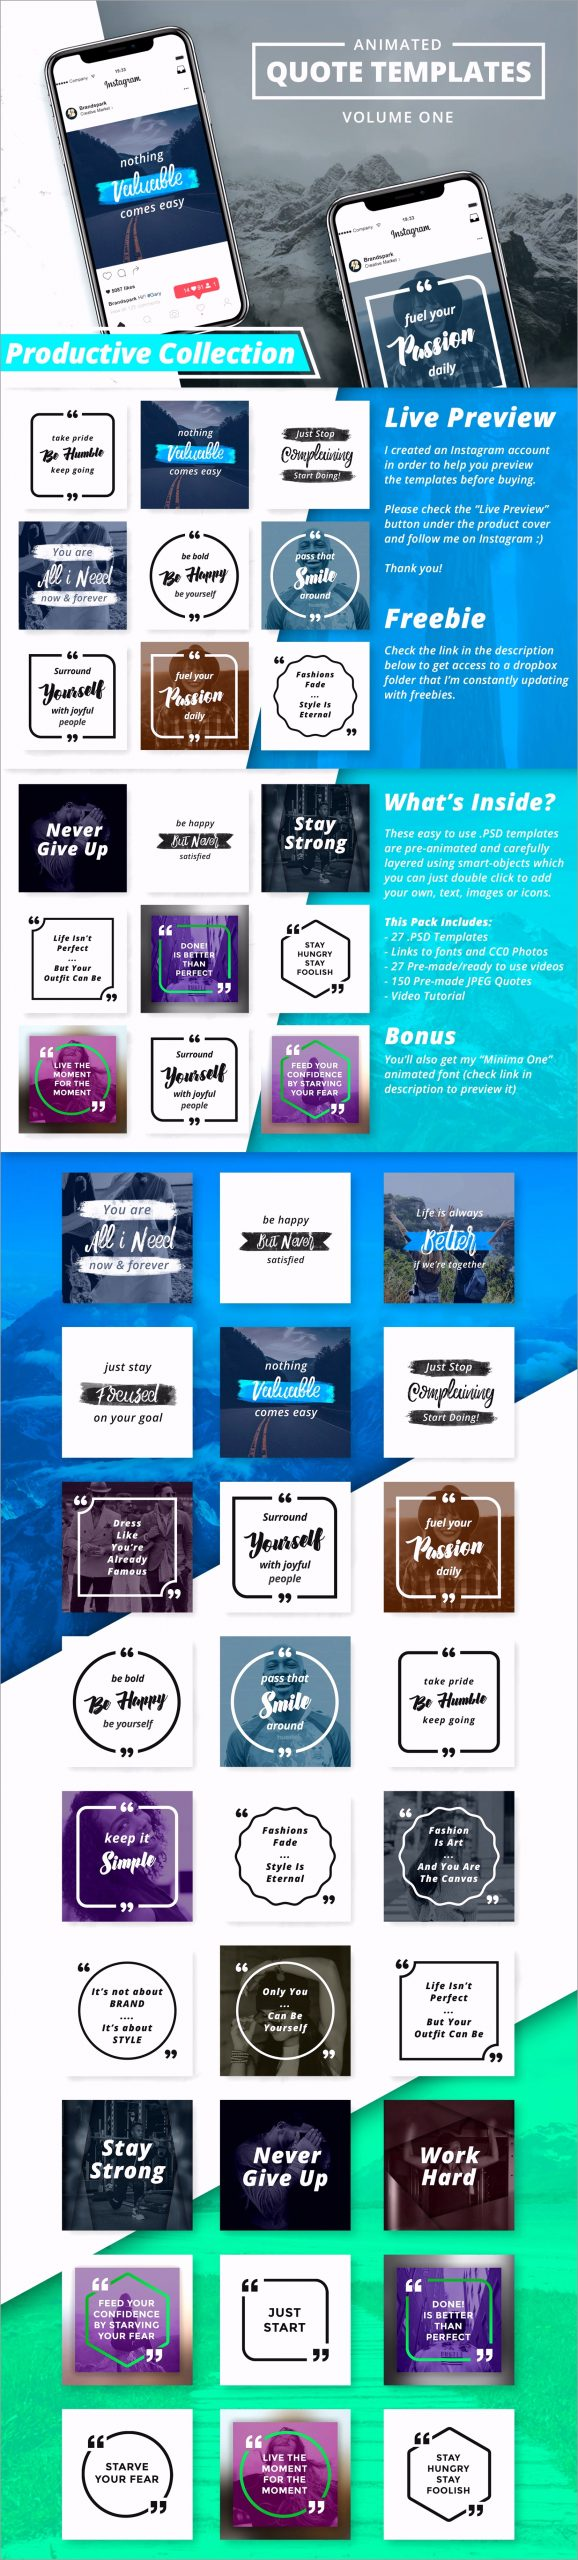 1 cover animated instagram quotes social media motivation inspiration inspirational motivational photoshop freebie free twaat